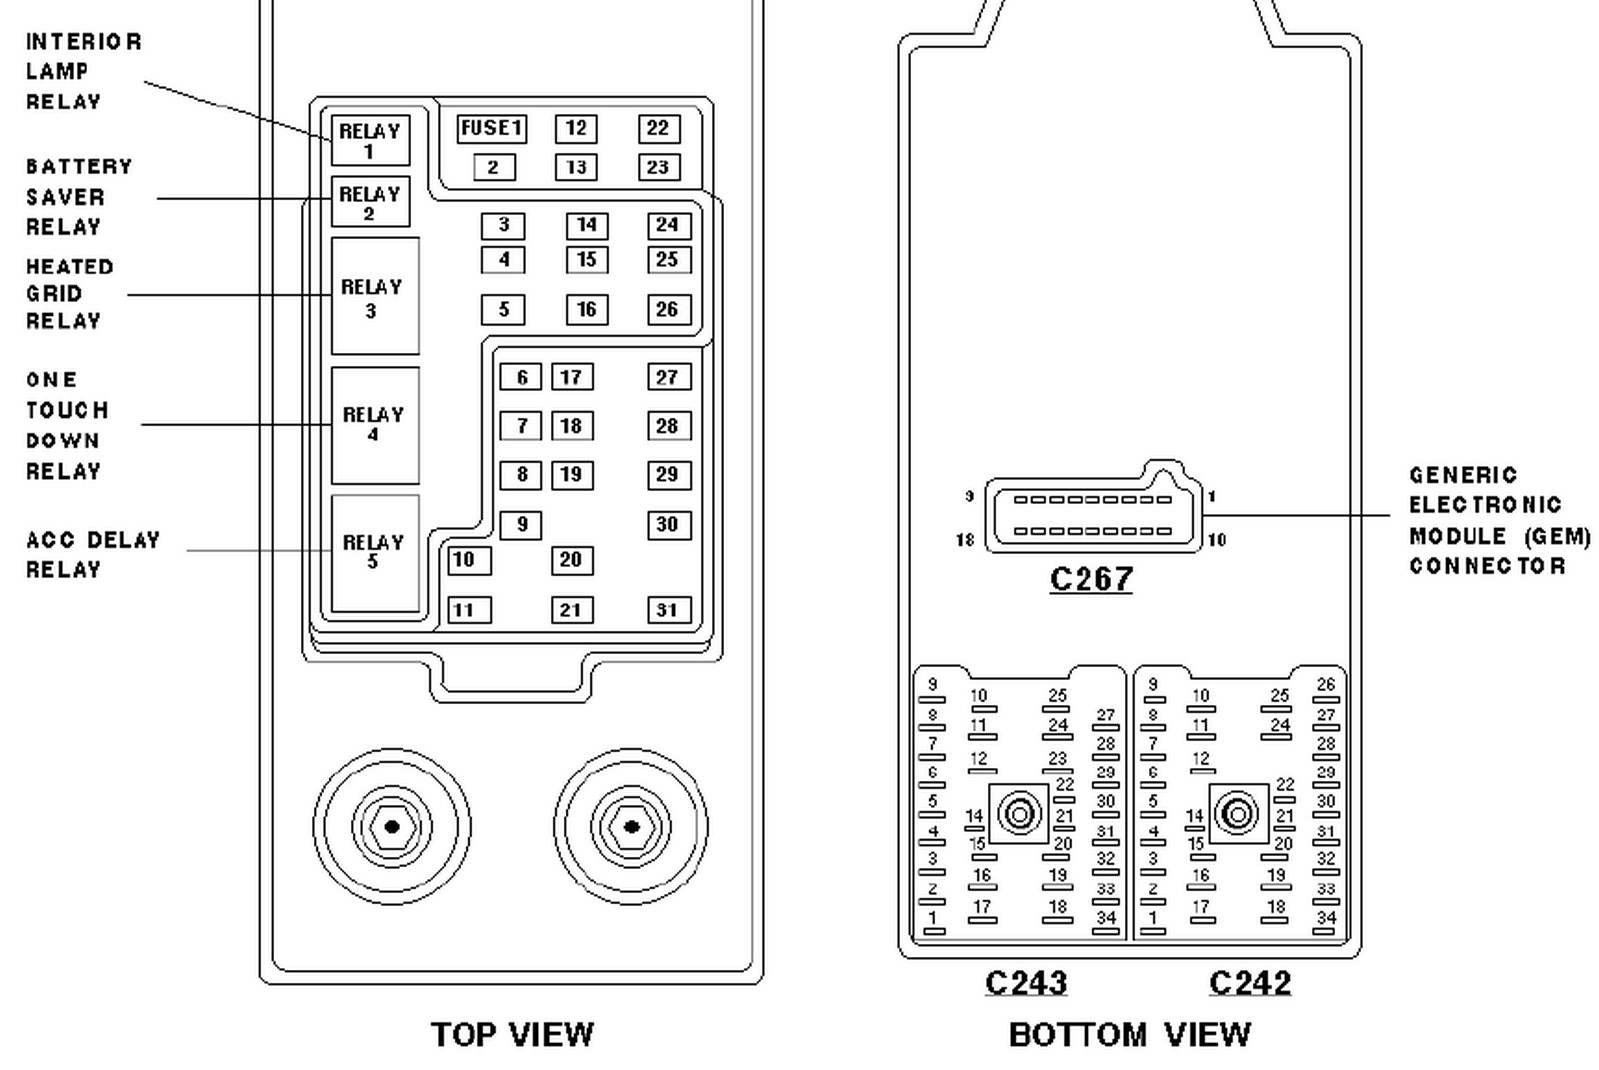 1997 Ford Expedition Fuse Box Diagram Image Details 2008 E-450 Fuse Panel Diagram  Ford F750 Fuse Box 1997